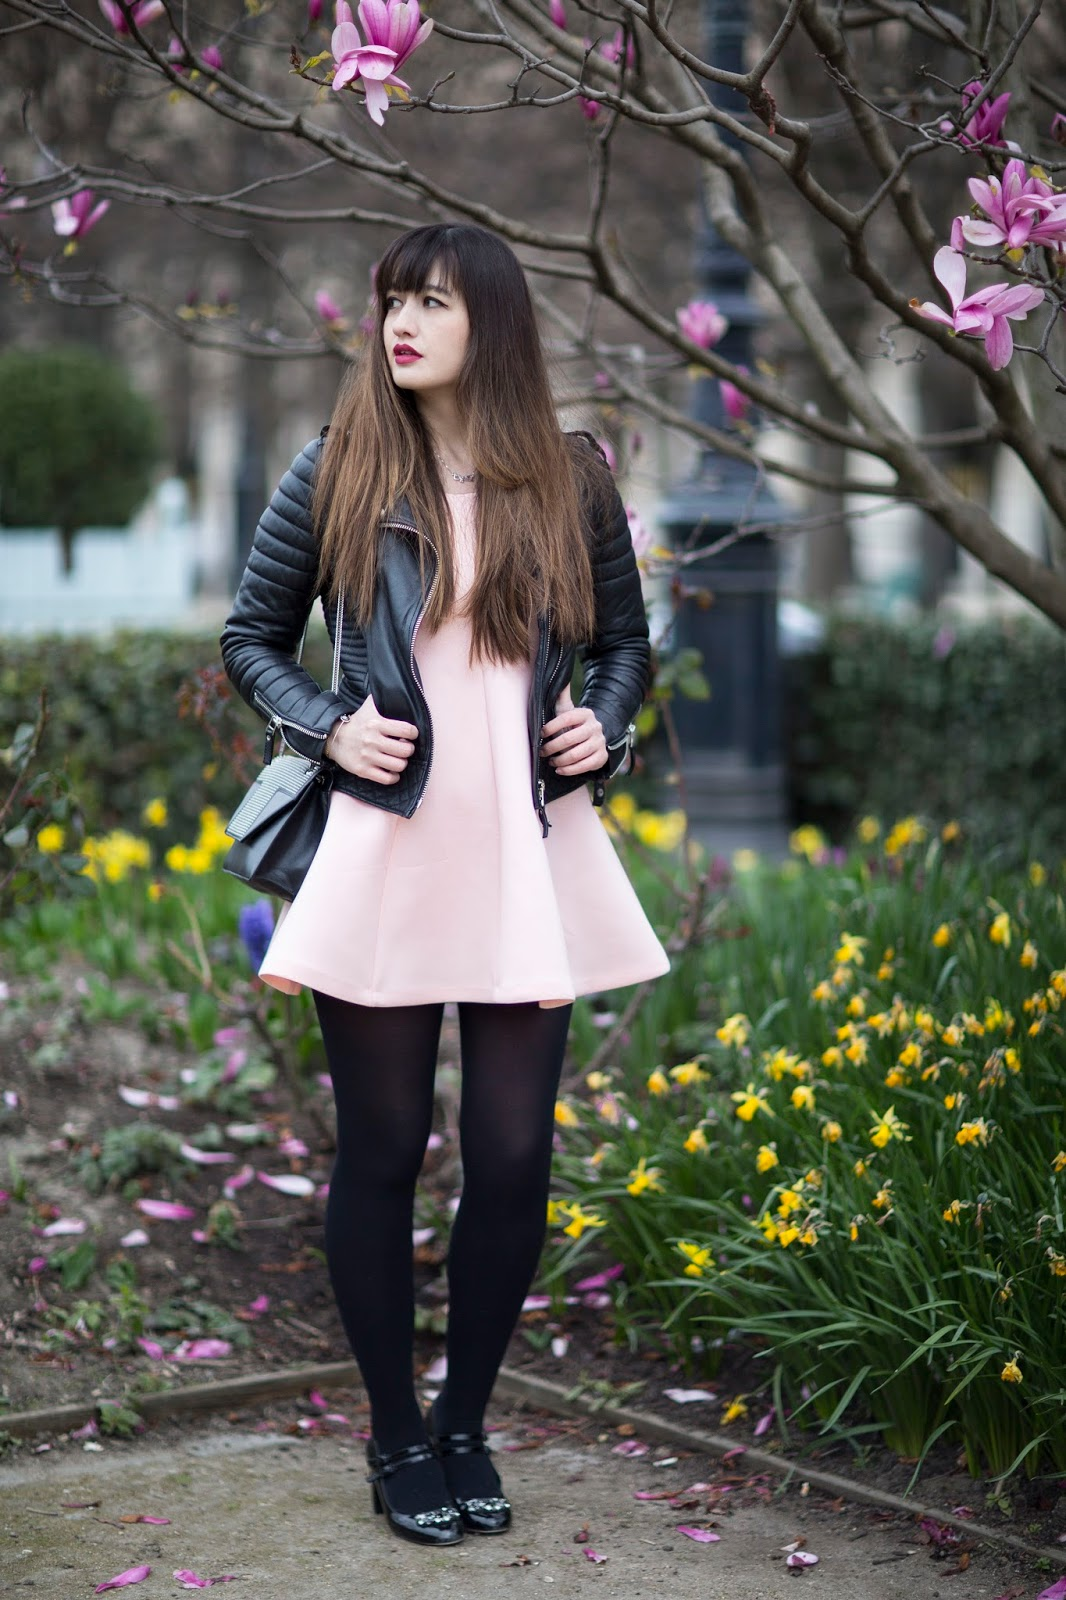 meet me in paree, blogger, fashion, look, style, pink, fashion photography, look, chic style